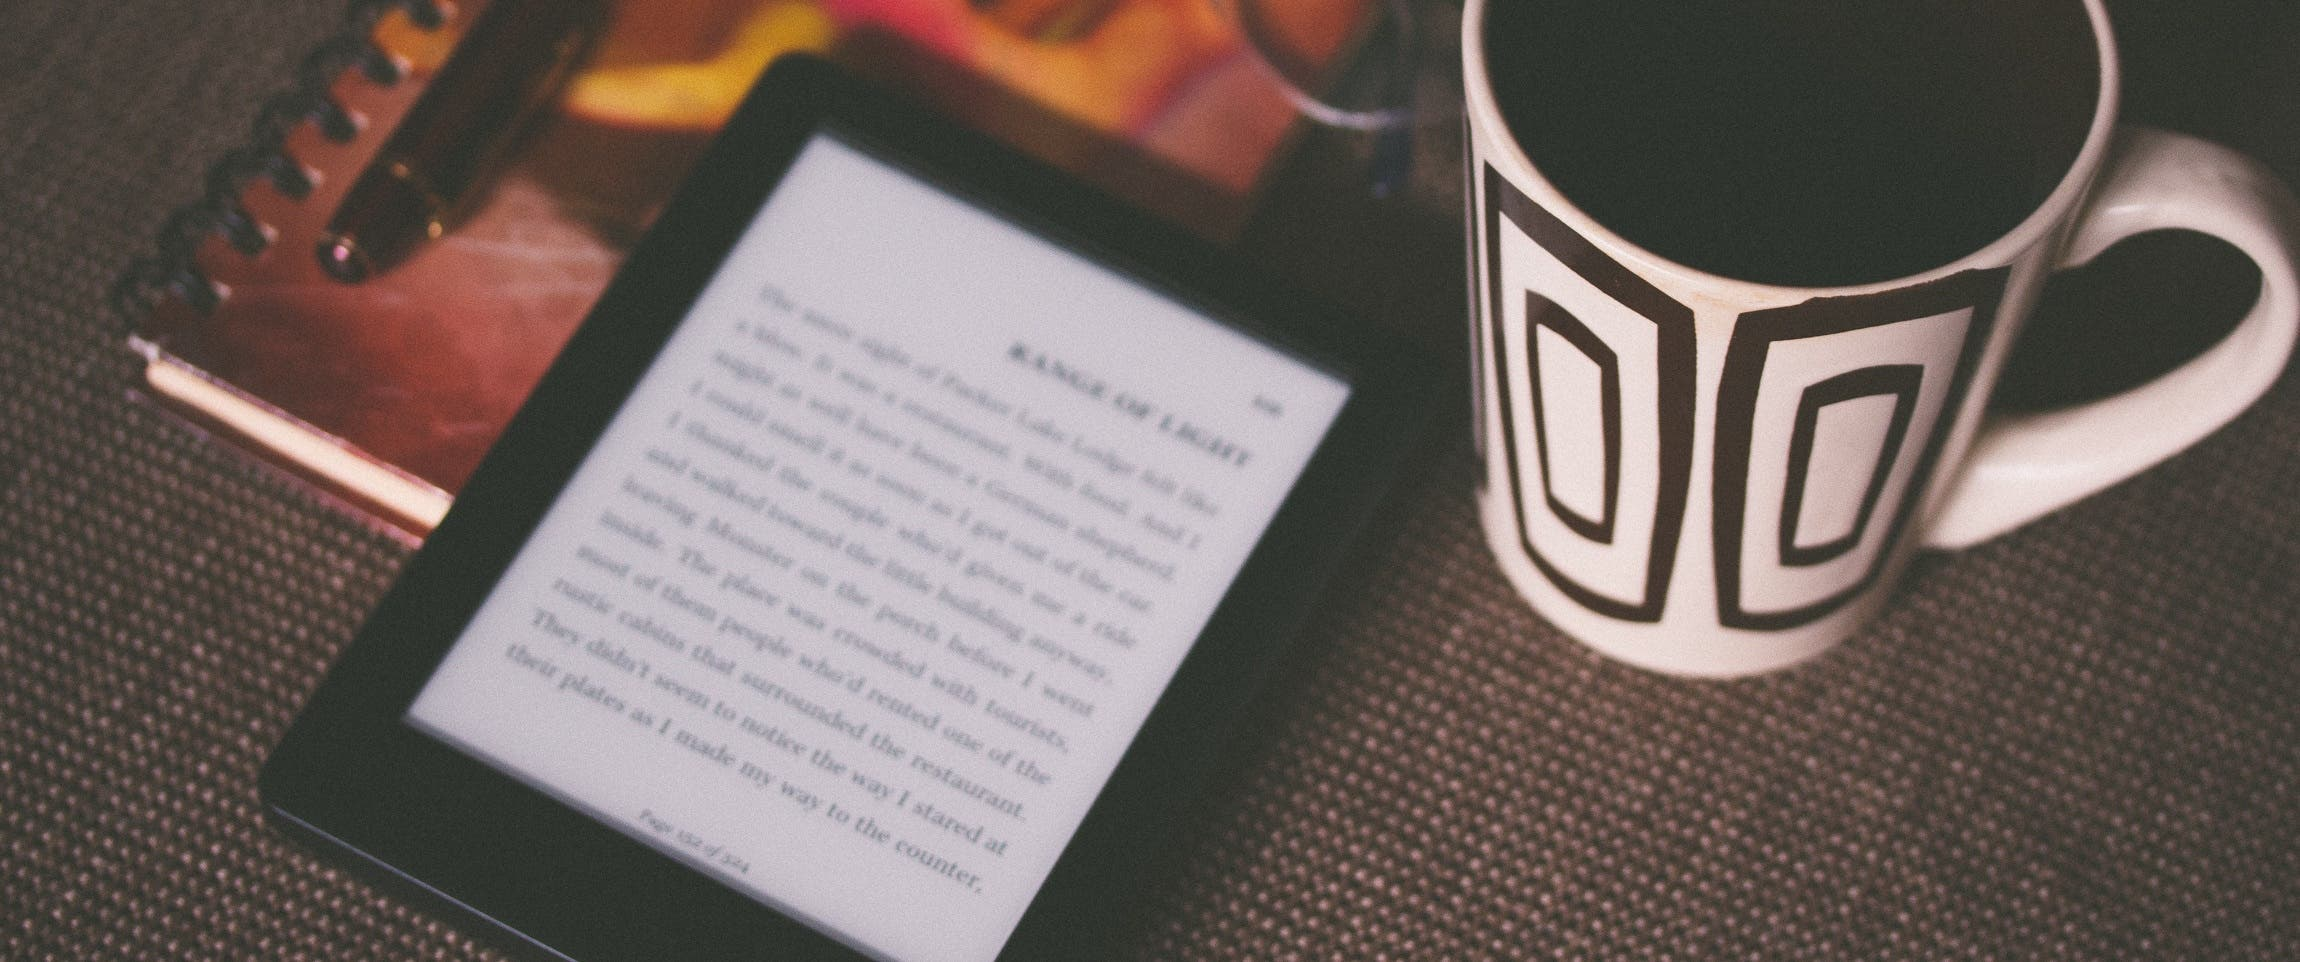 how to put up e book on kindle